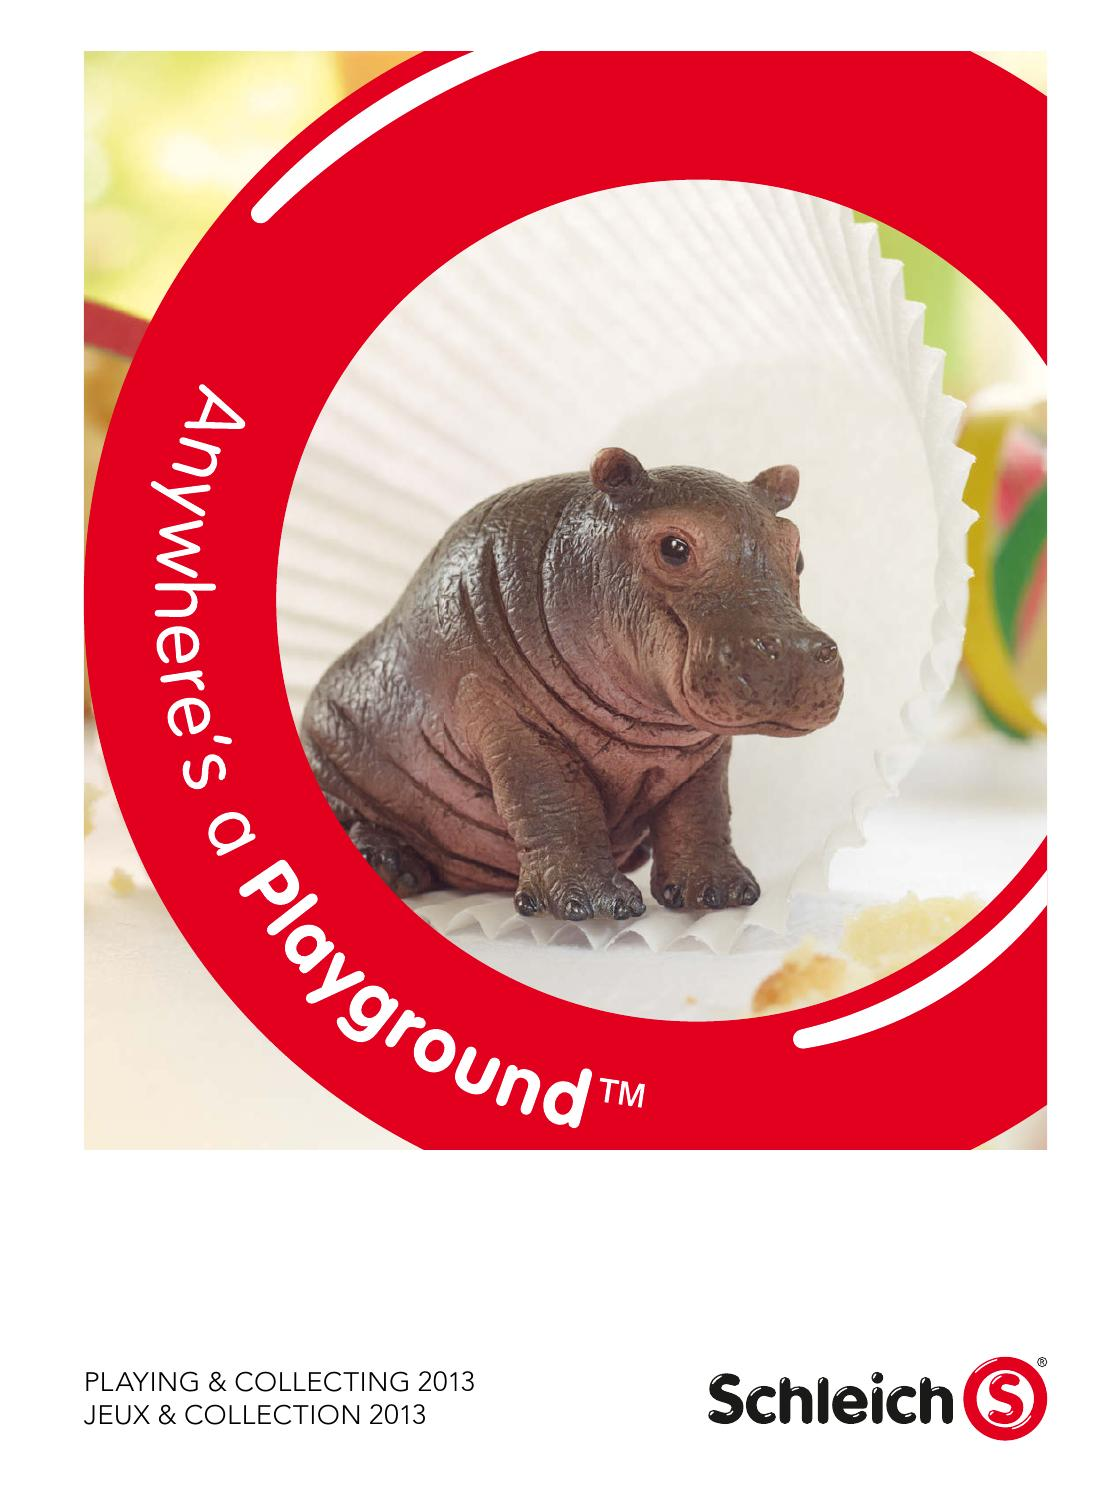 Schleich Wild Life ours polaire jeune constamment Ours Polaire Glace Ours Ours Animal sauvage personnage